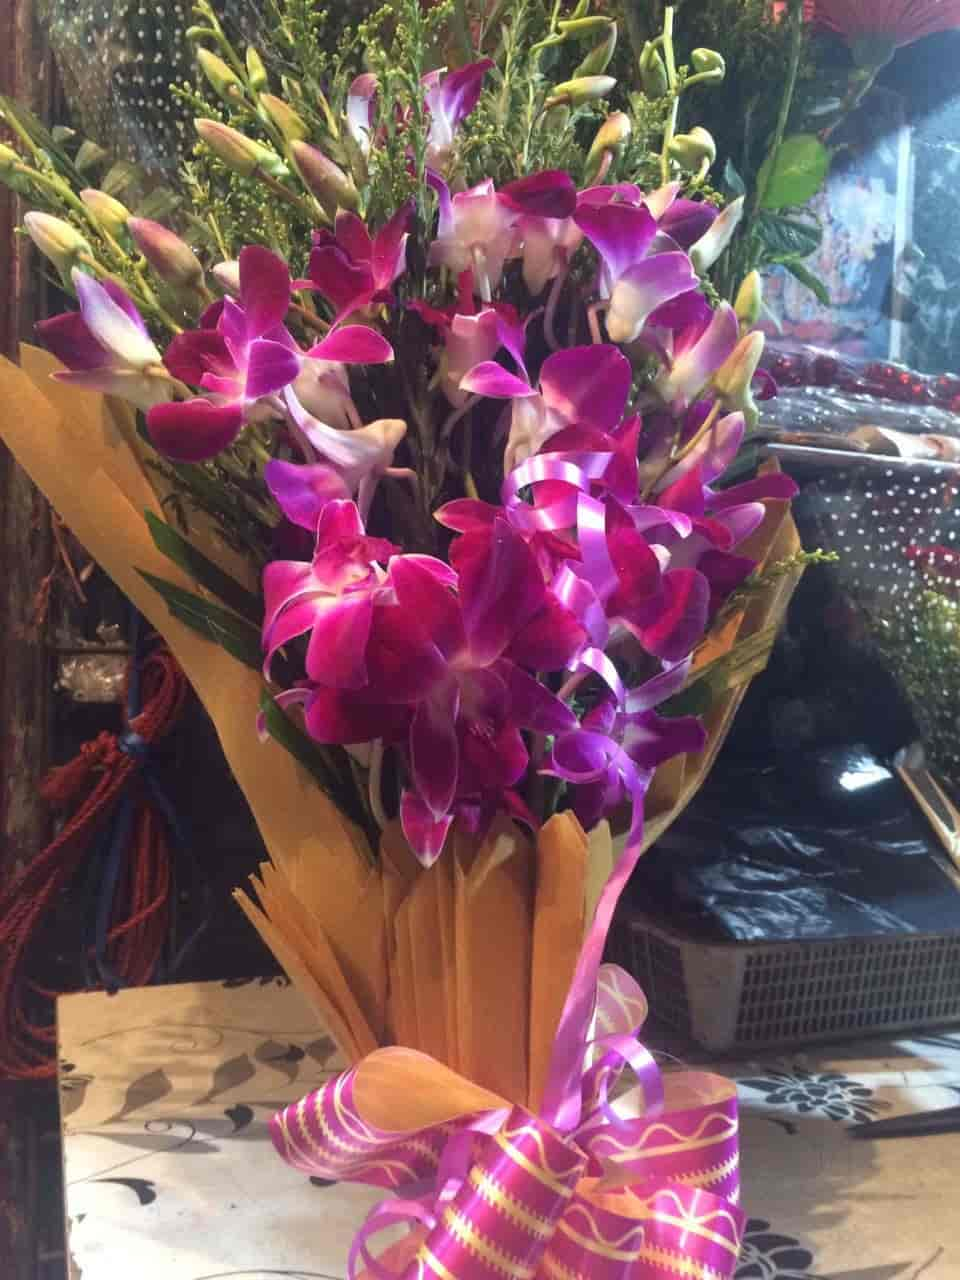 flowers fragrances photos sion mumbai pictures images gallery